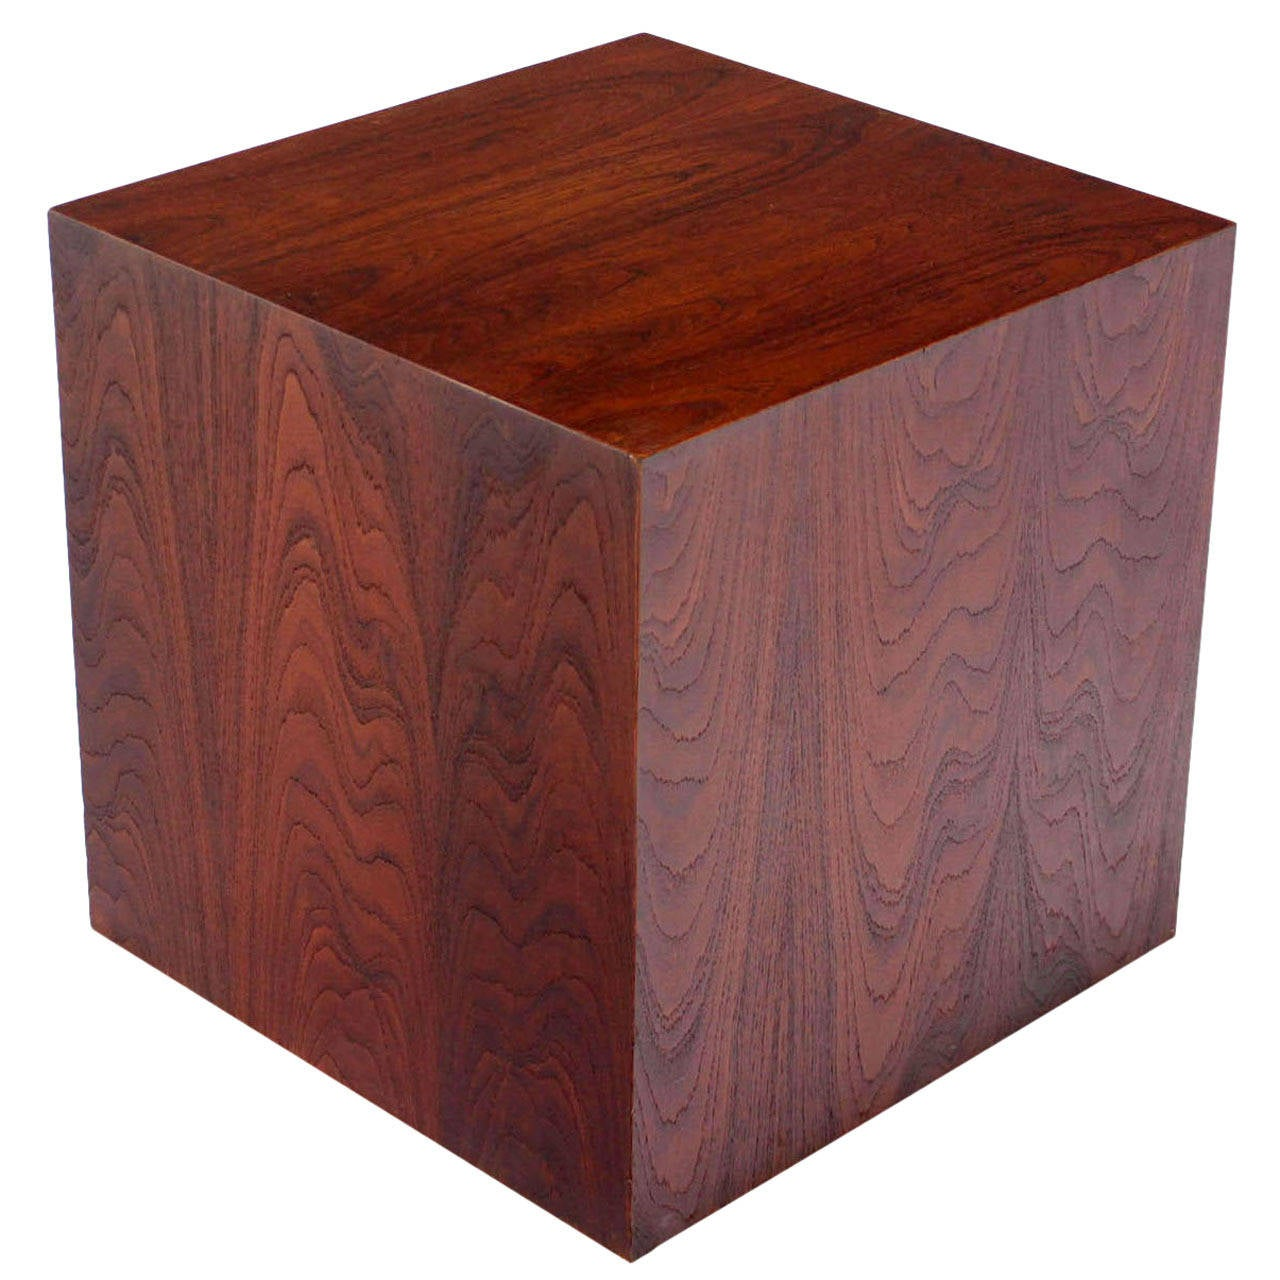 Mid-Century Modern Oiled Walnut Cube Pedestal or Side Table at 1stdibs